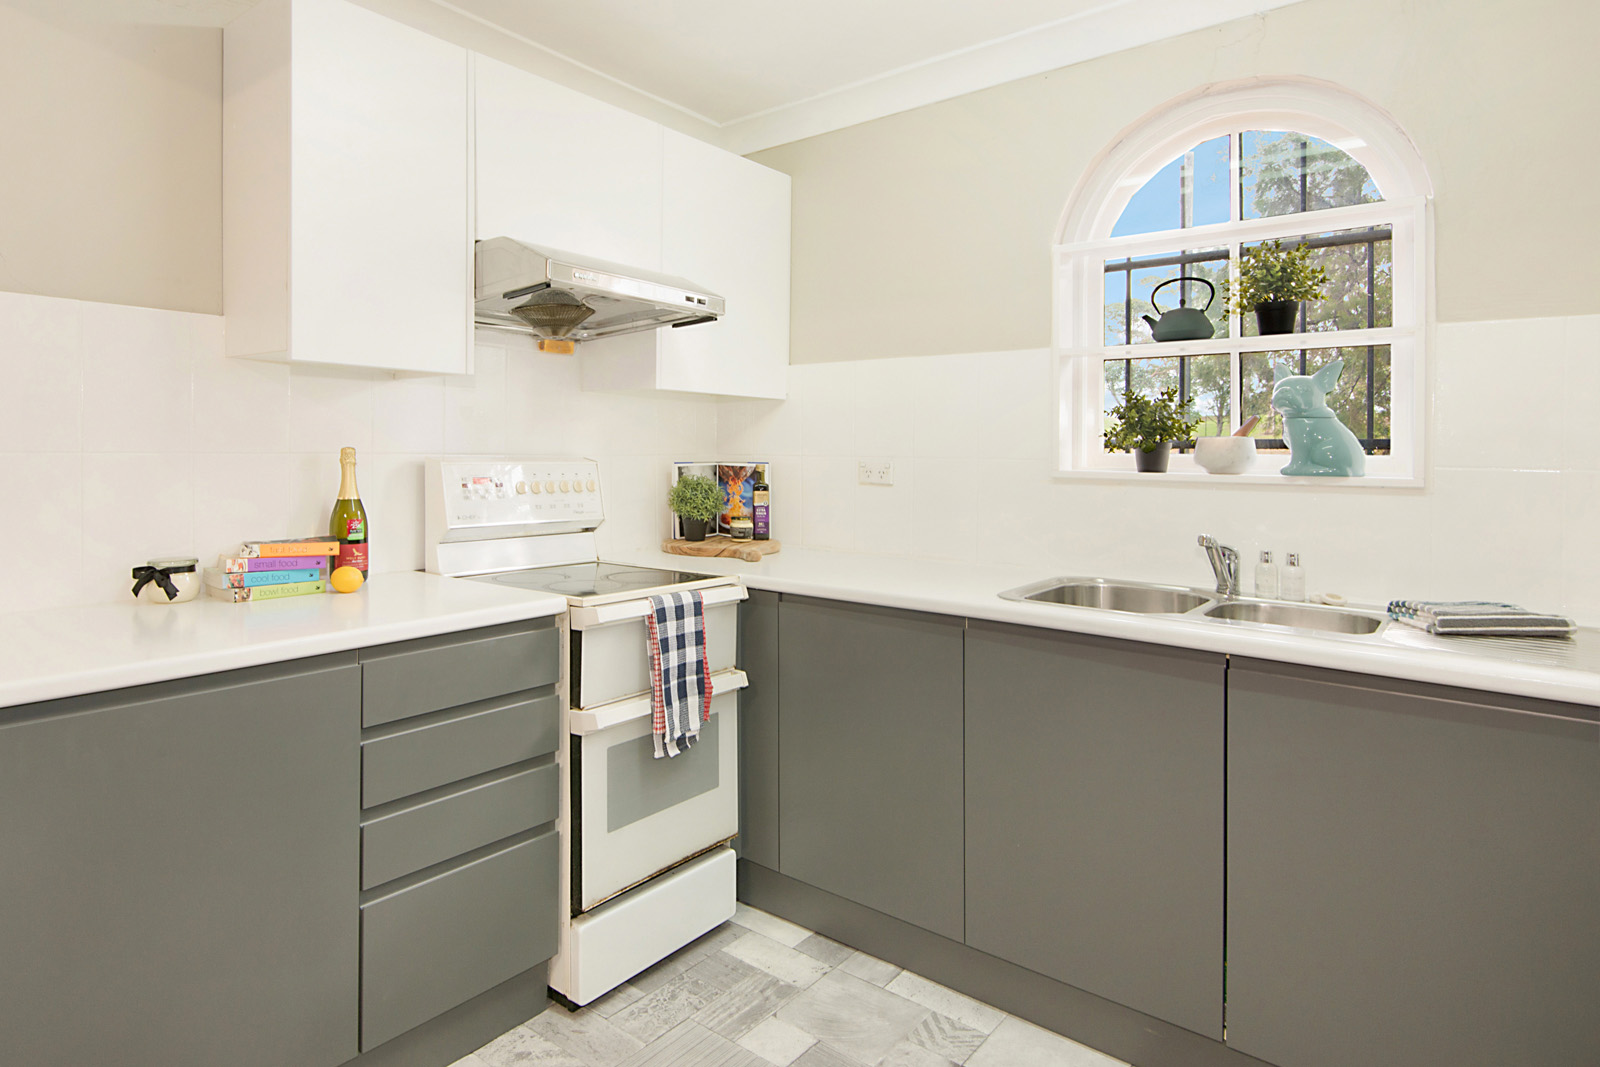 Tips For How To Install DIY Flat Pack Kitchens